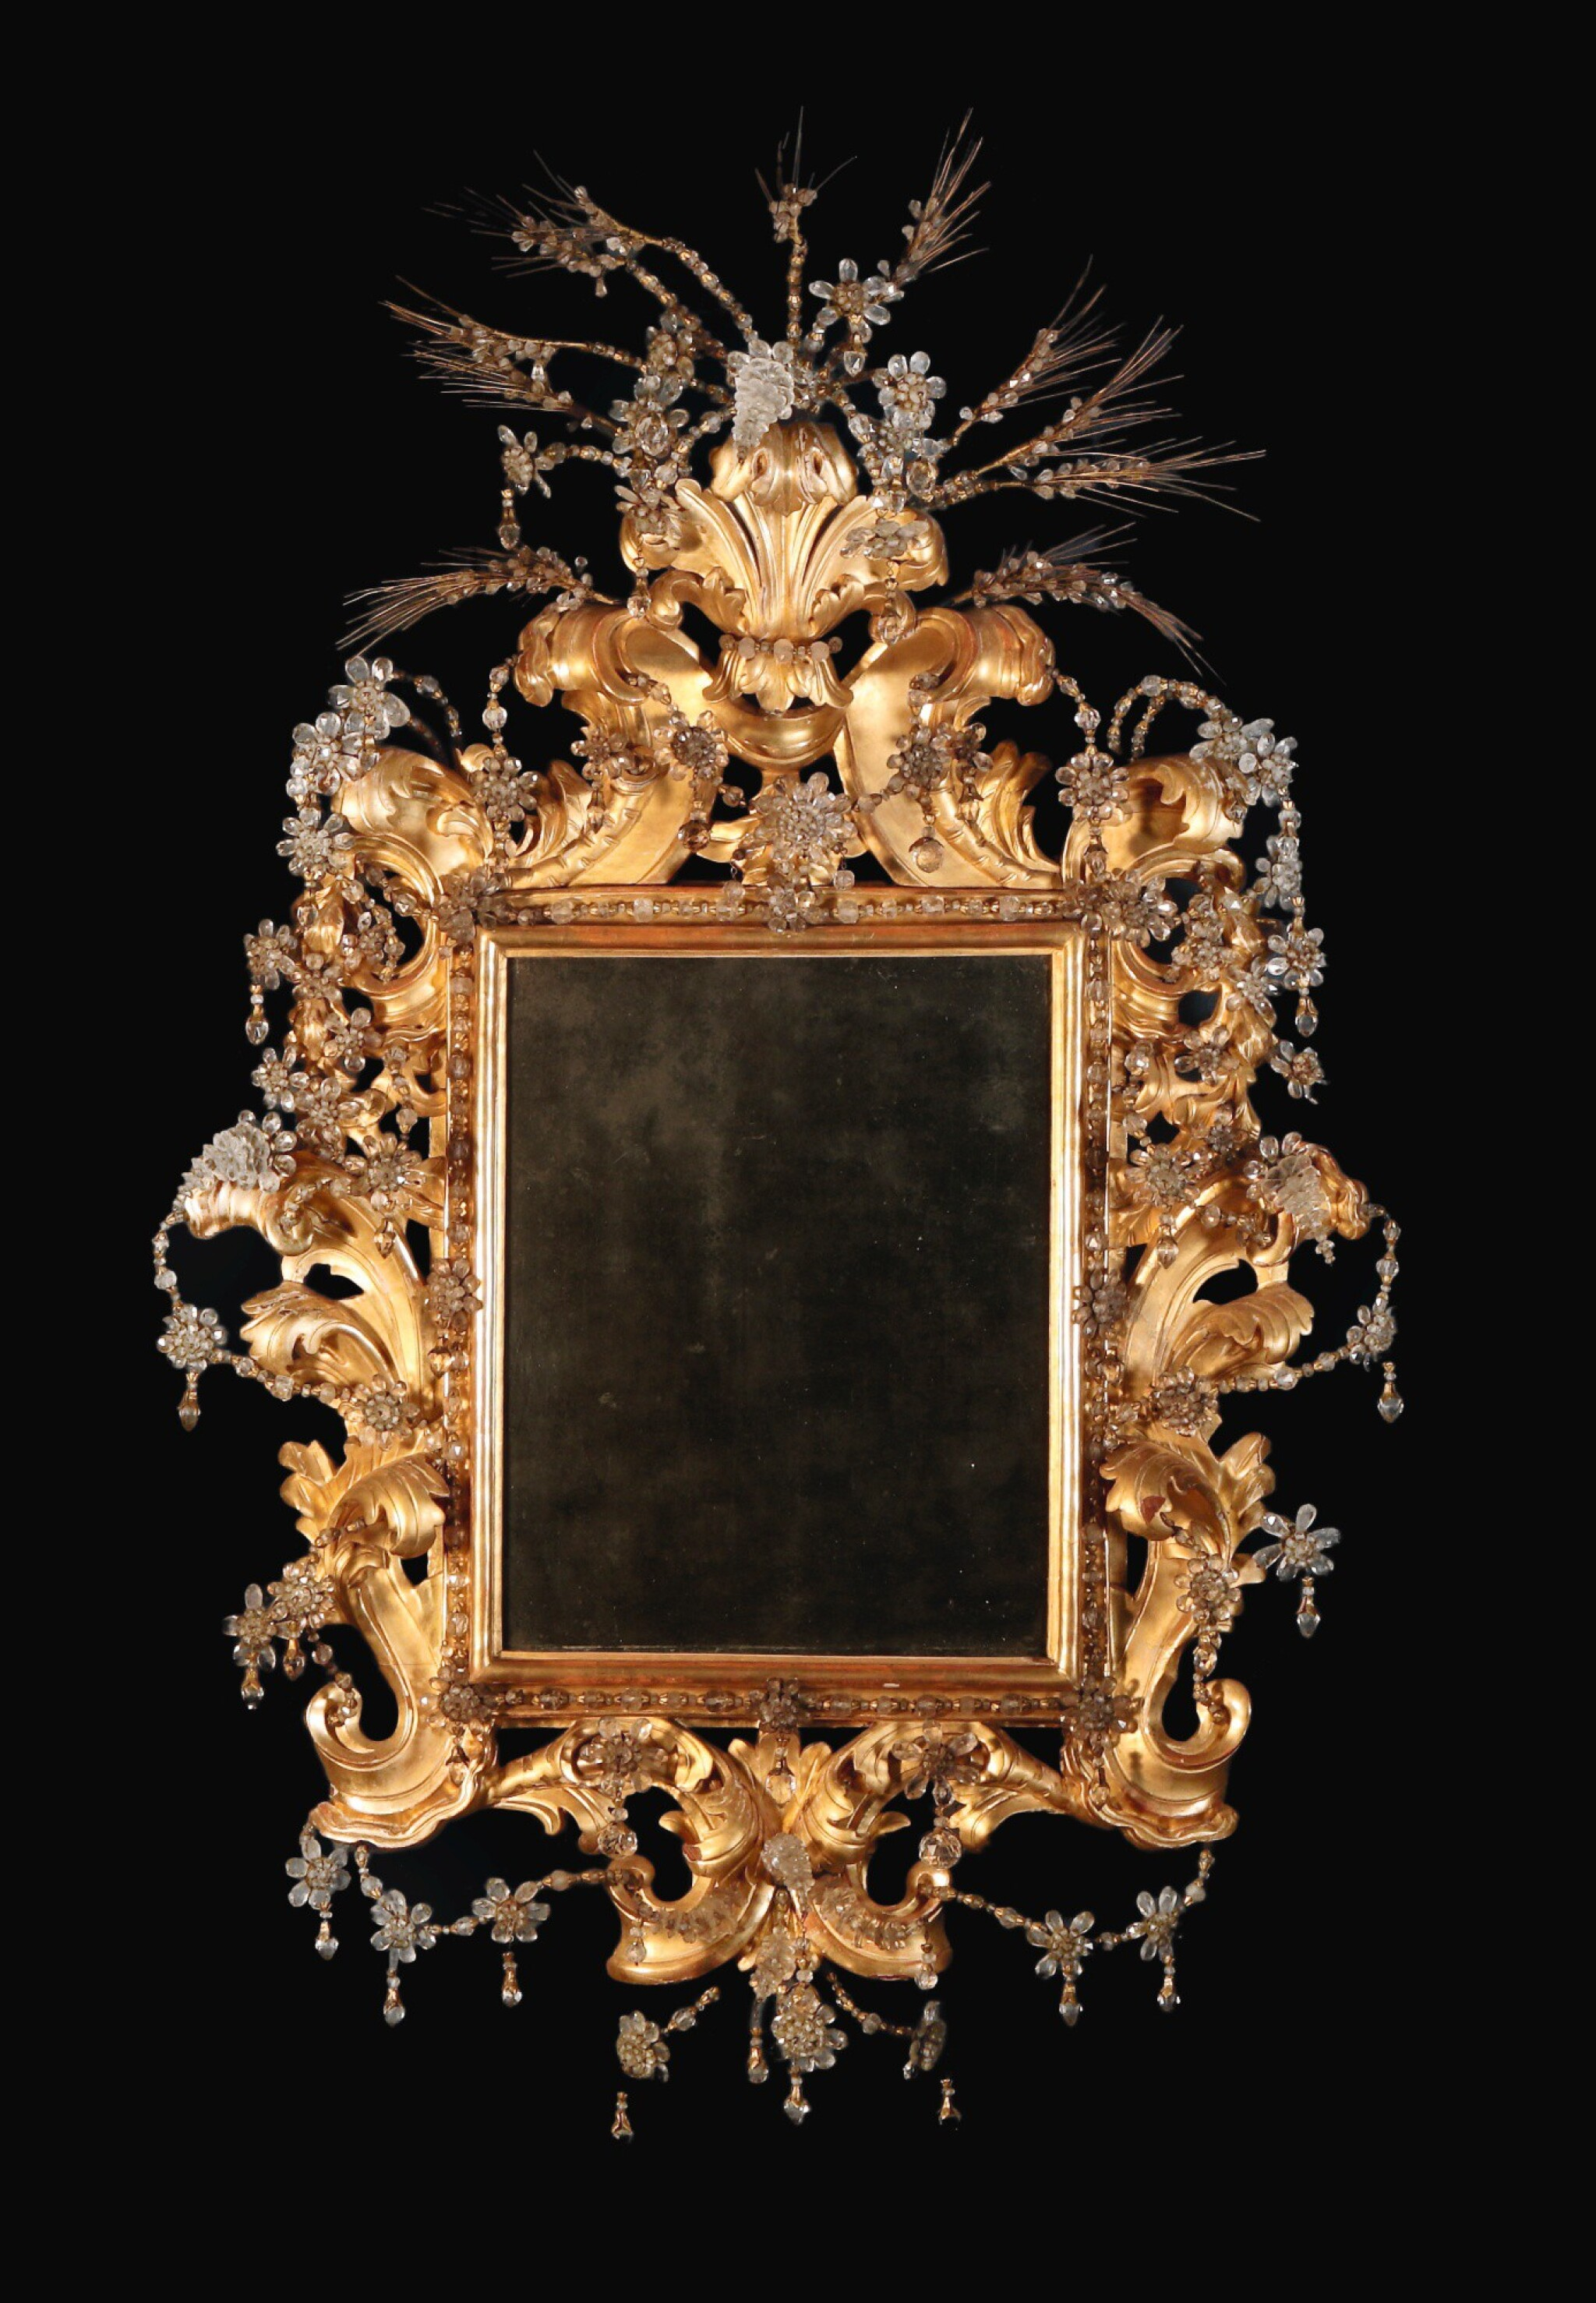 An Italian Baroque rock crystal and carved giltwood mirror, Genoa late 17th/early 18th century